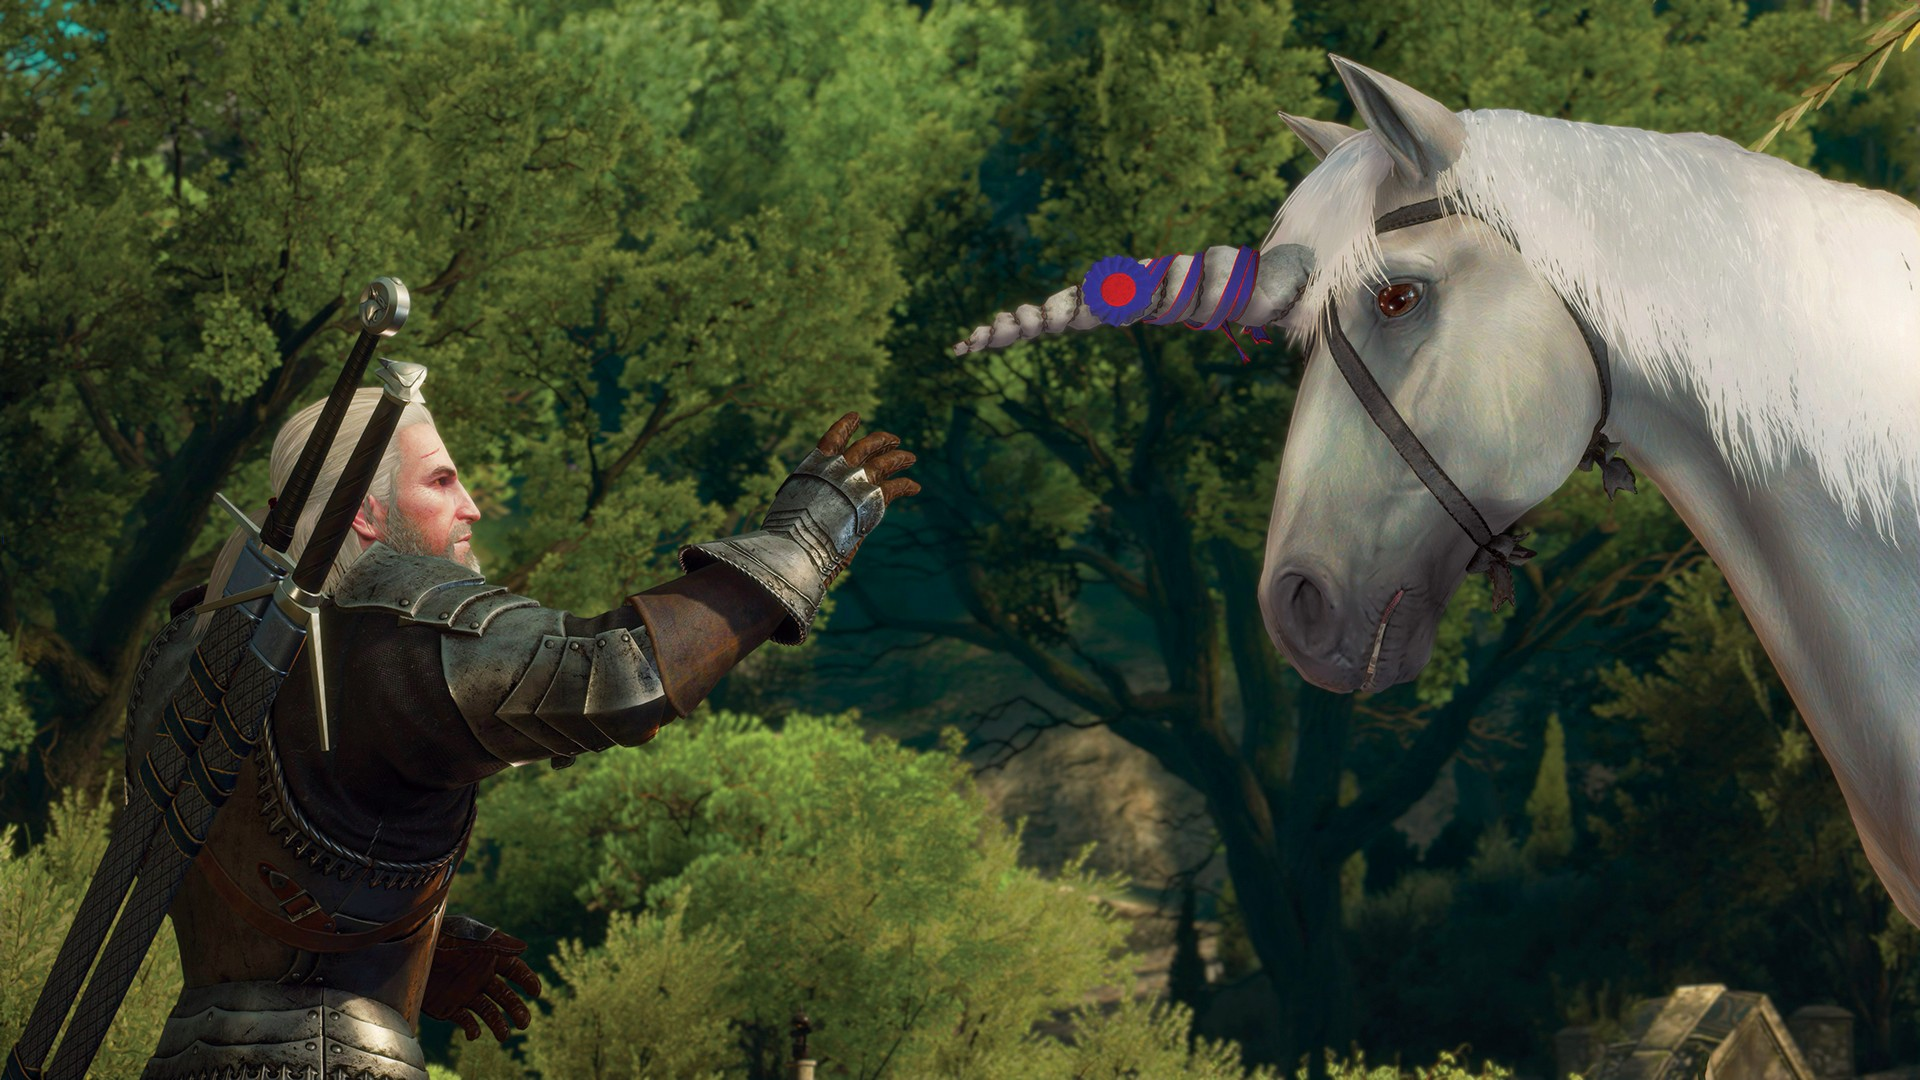 UPDATED]The Witcher 3 1 20 Update Now Available On Steam, GOG and